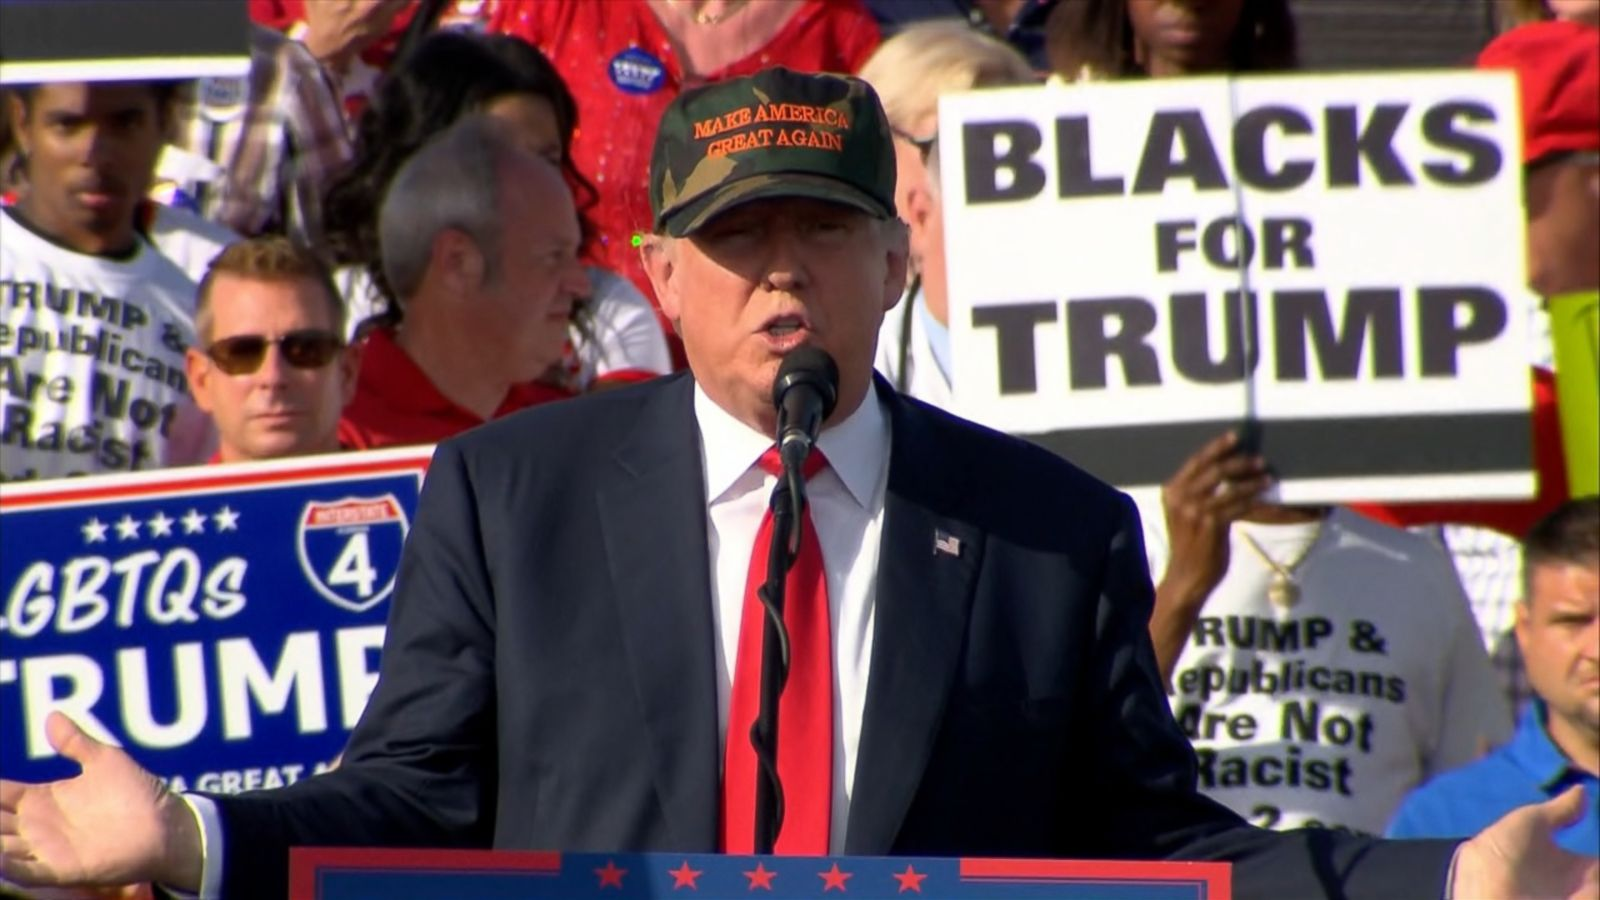 VIDEO: As Donald Trump campaigned in central Florida, he made his usual appeal to African-Americans, painting a grim and partially inaccurate portrait of black communities.